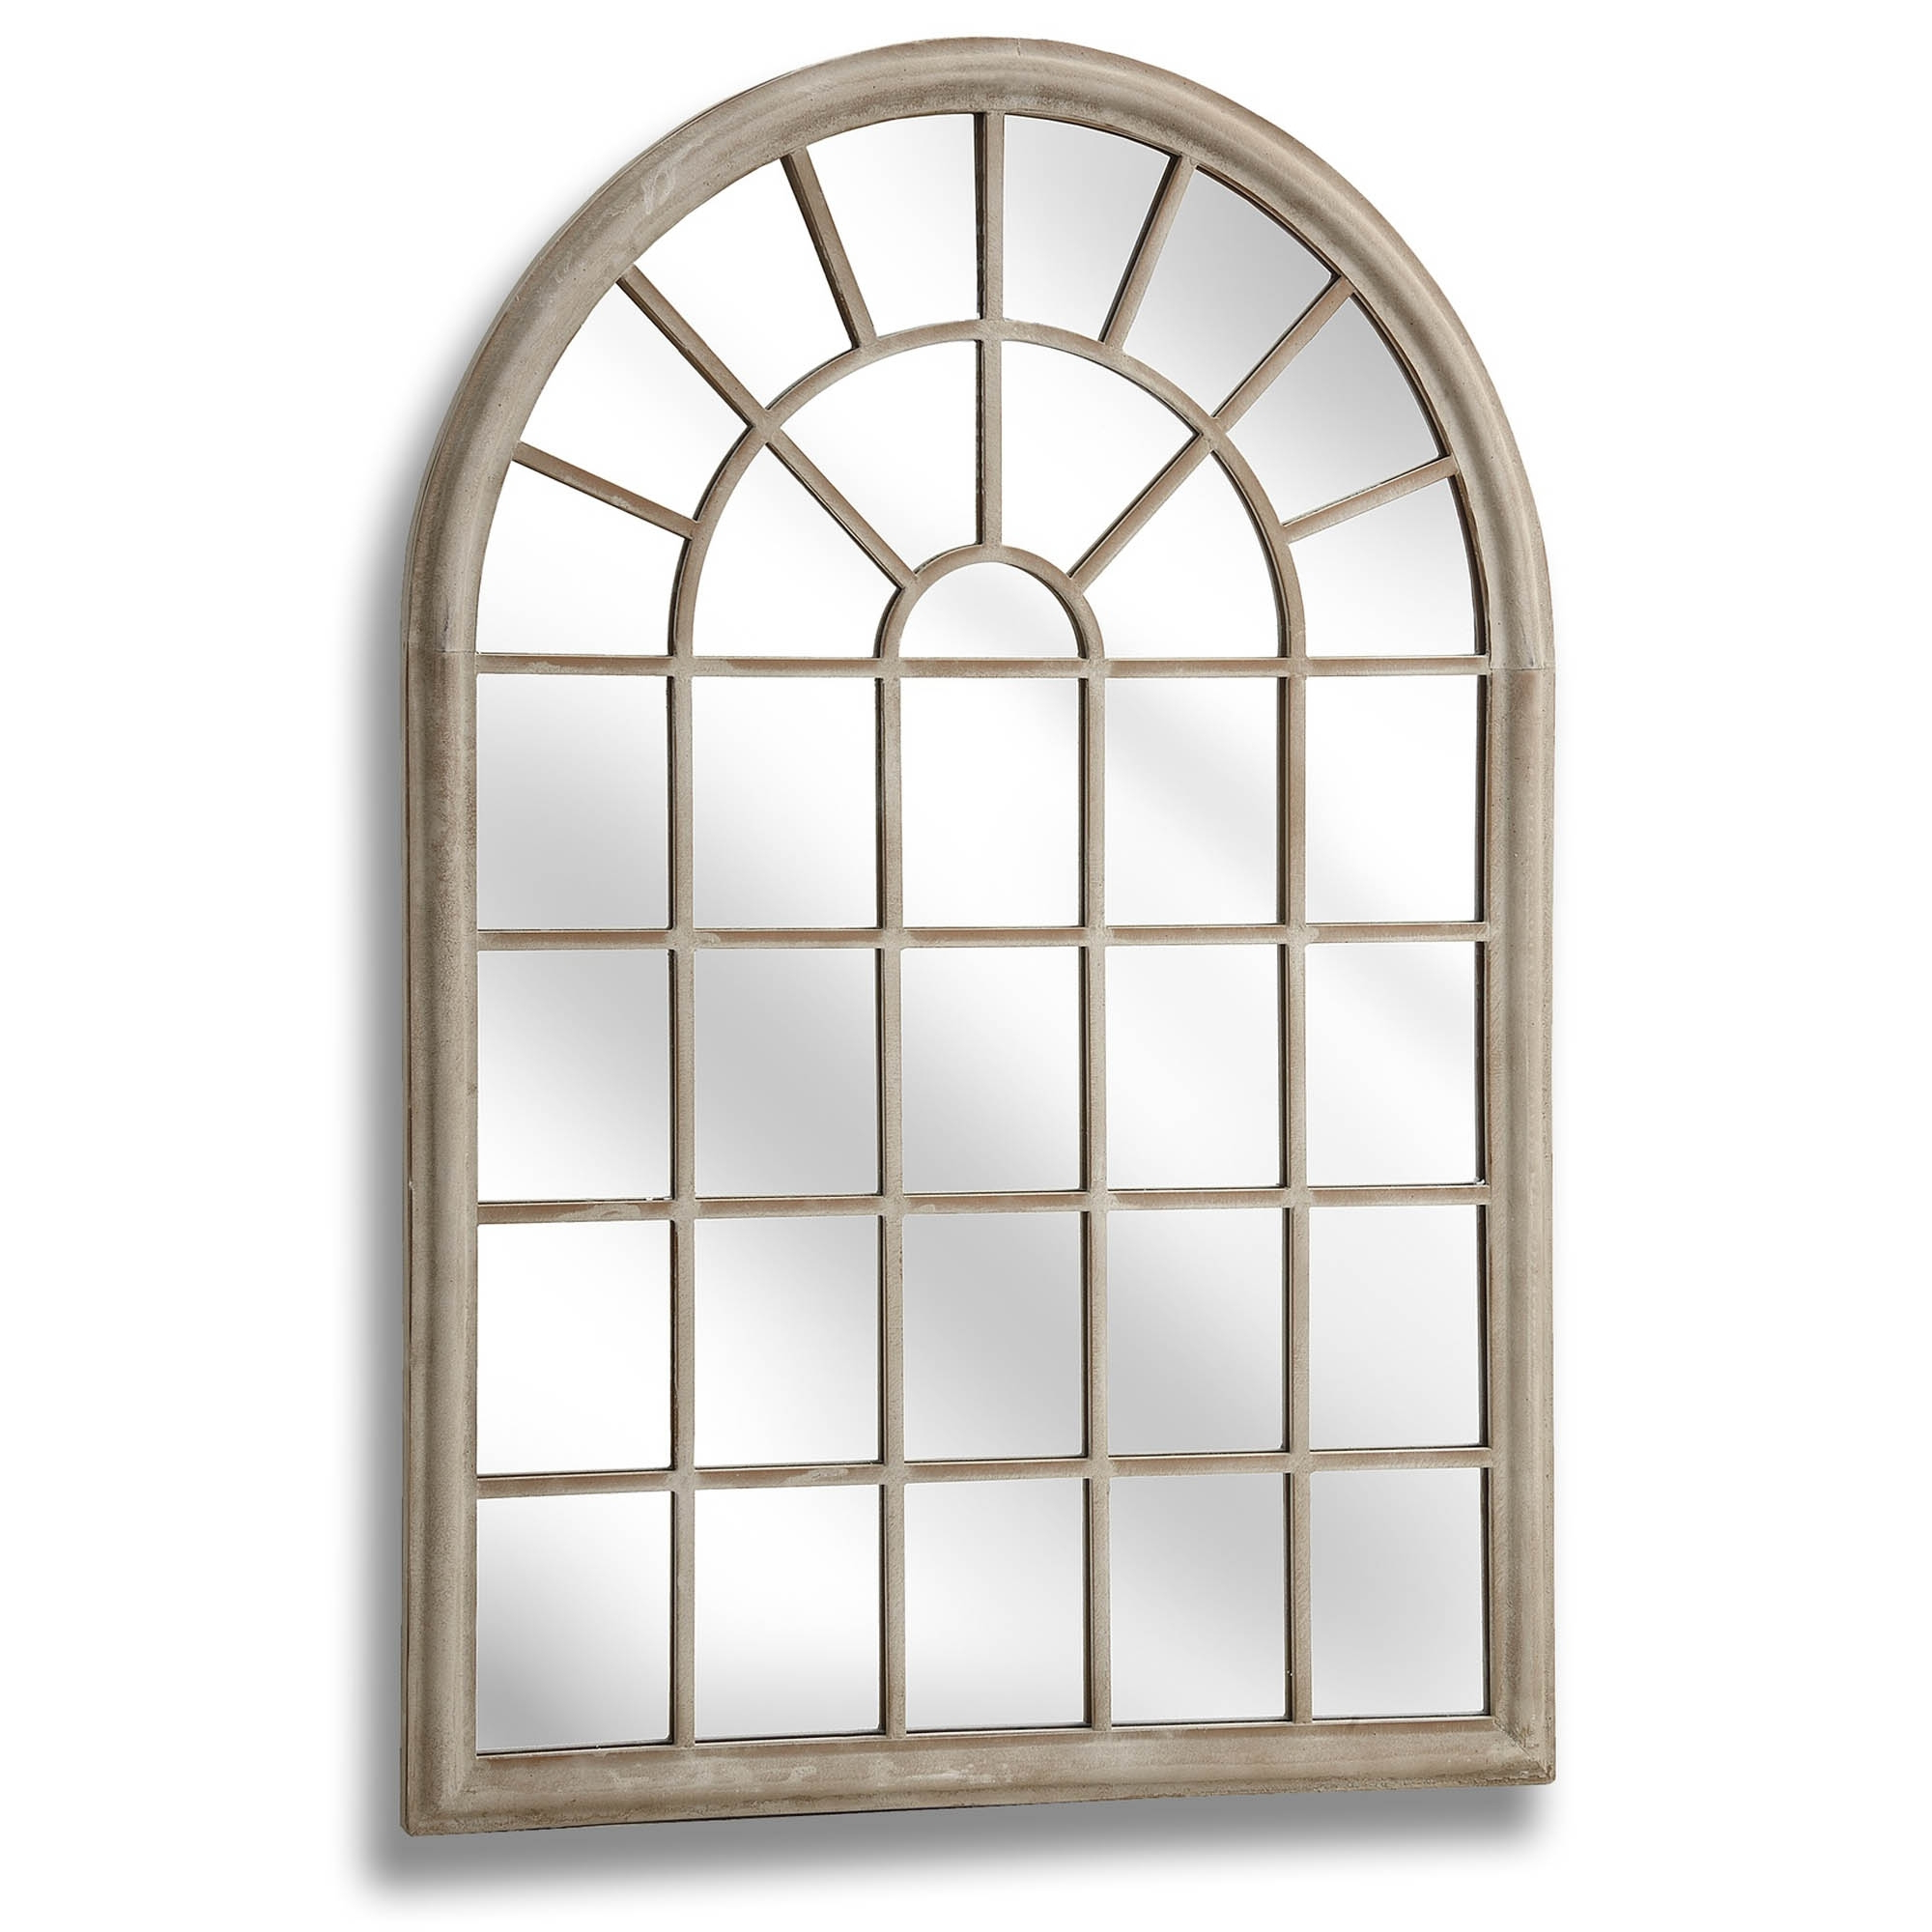 Newest Arched Wall Mirrors Regarding Large Rustic Arched Window Wall Mirror (View 7 of 20)